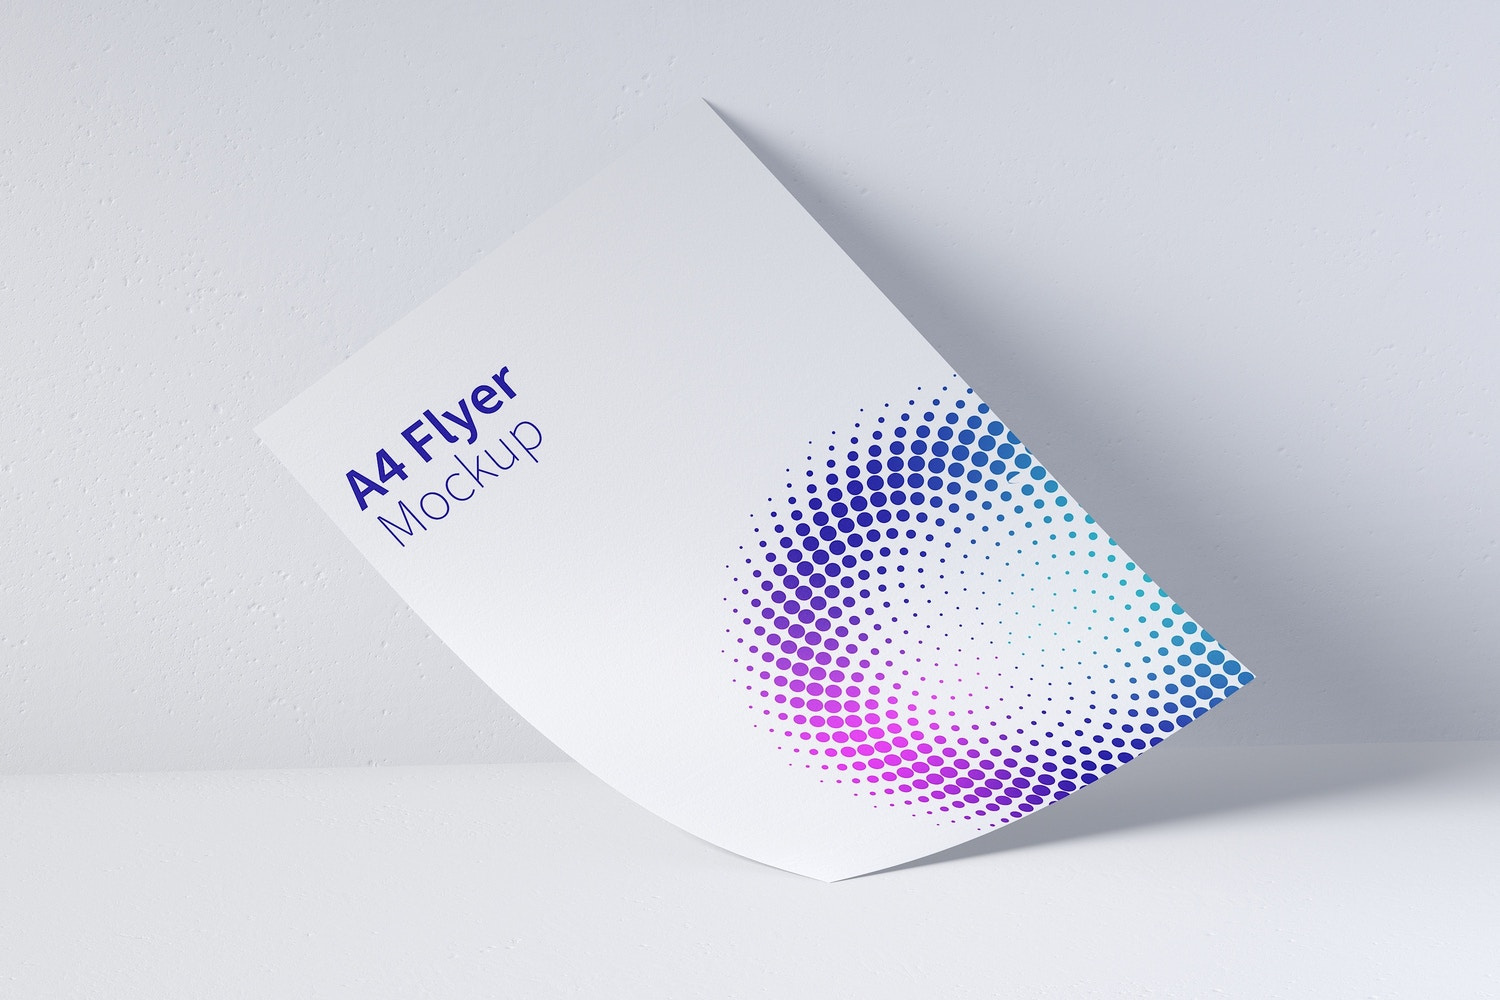 A4 Flyer Mockup 01 by Original Mockups on Original Mockups